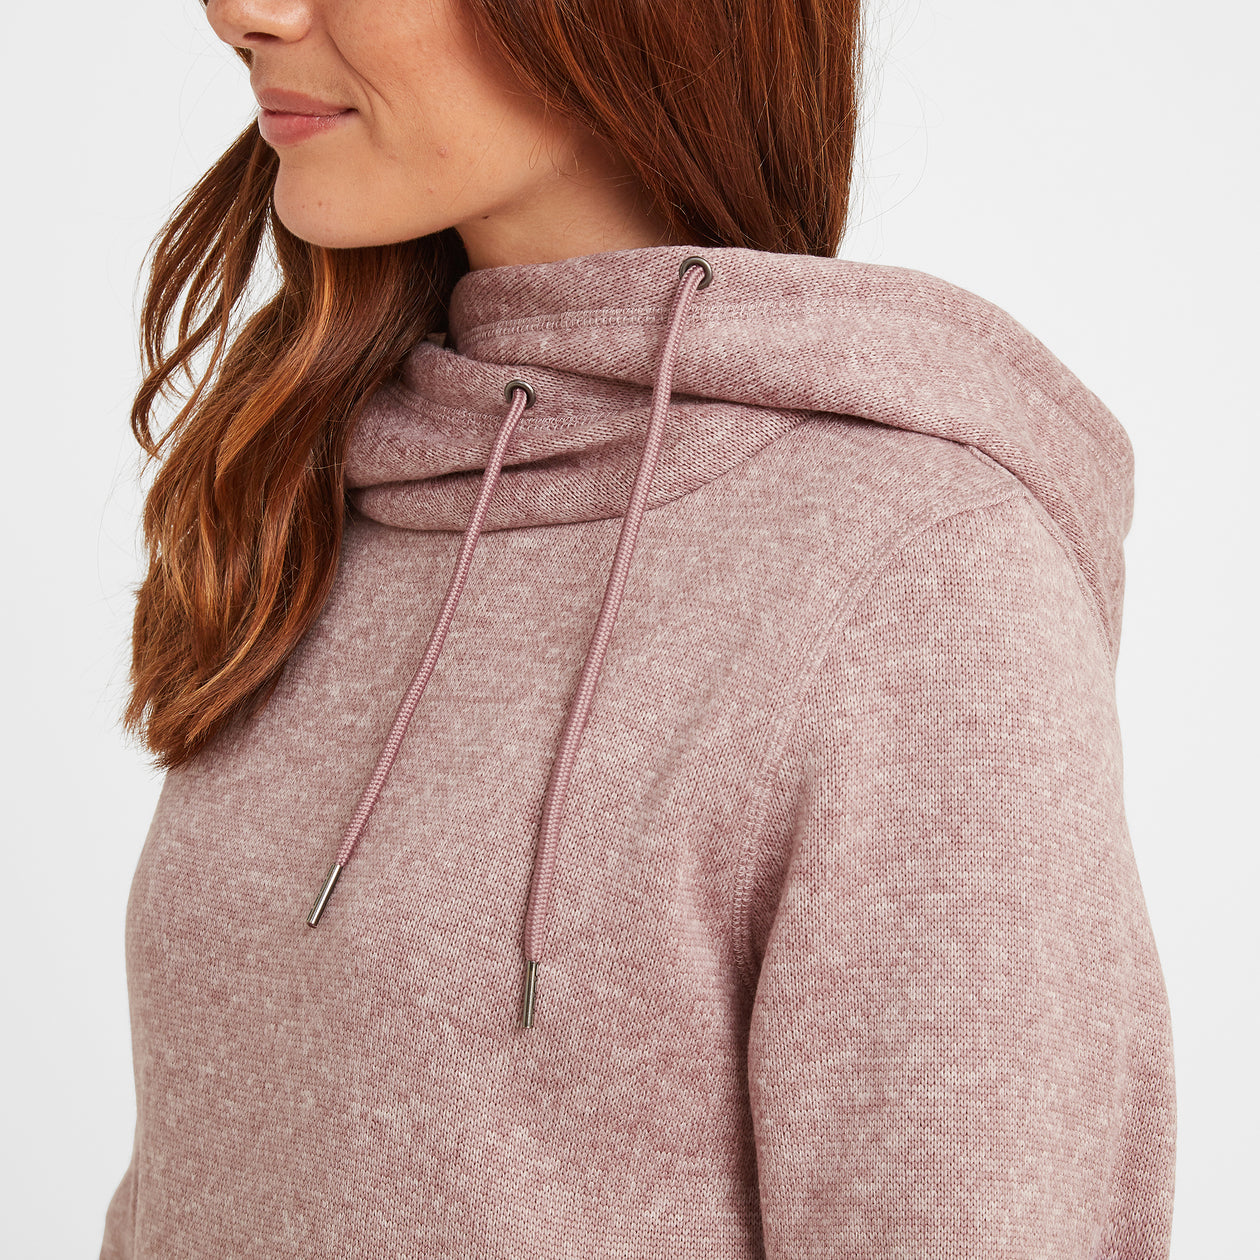 Acer Womens Knitlook Fleece Hoody - Faded Pink image 4